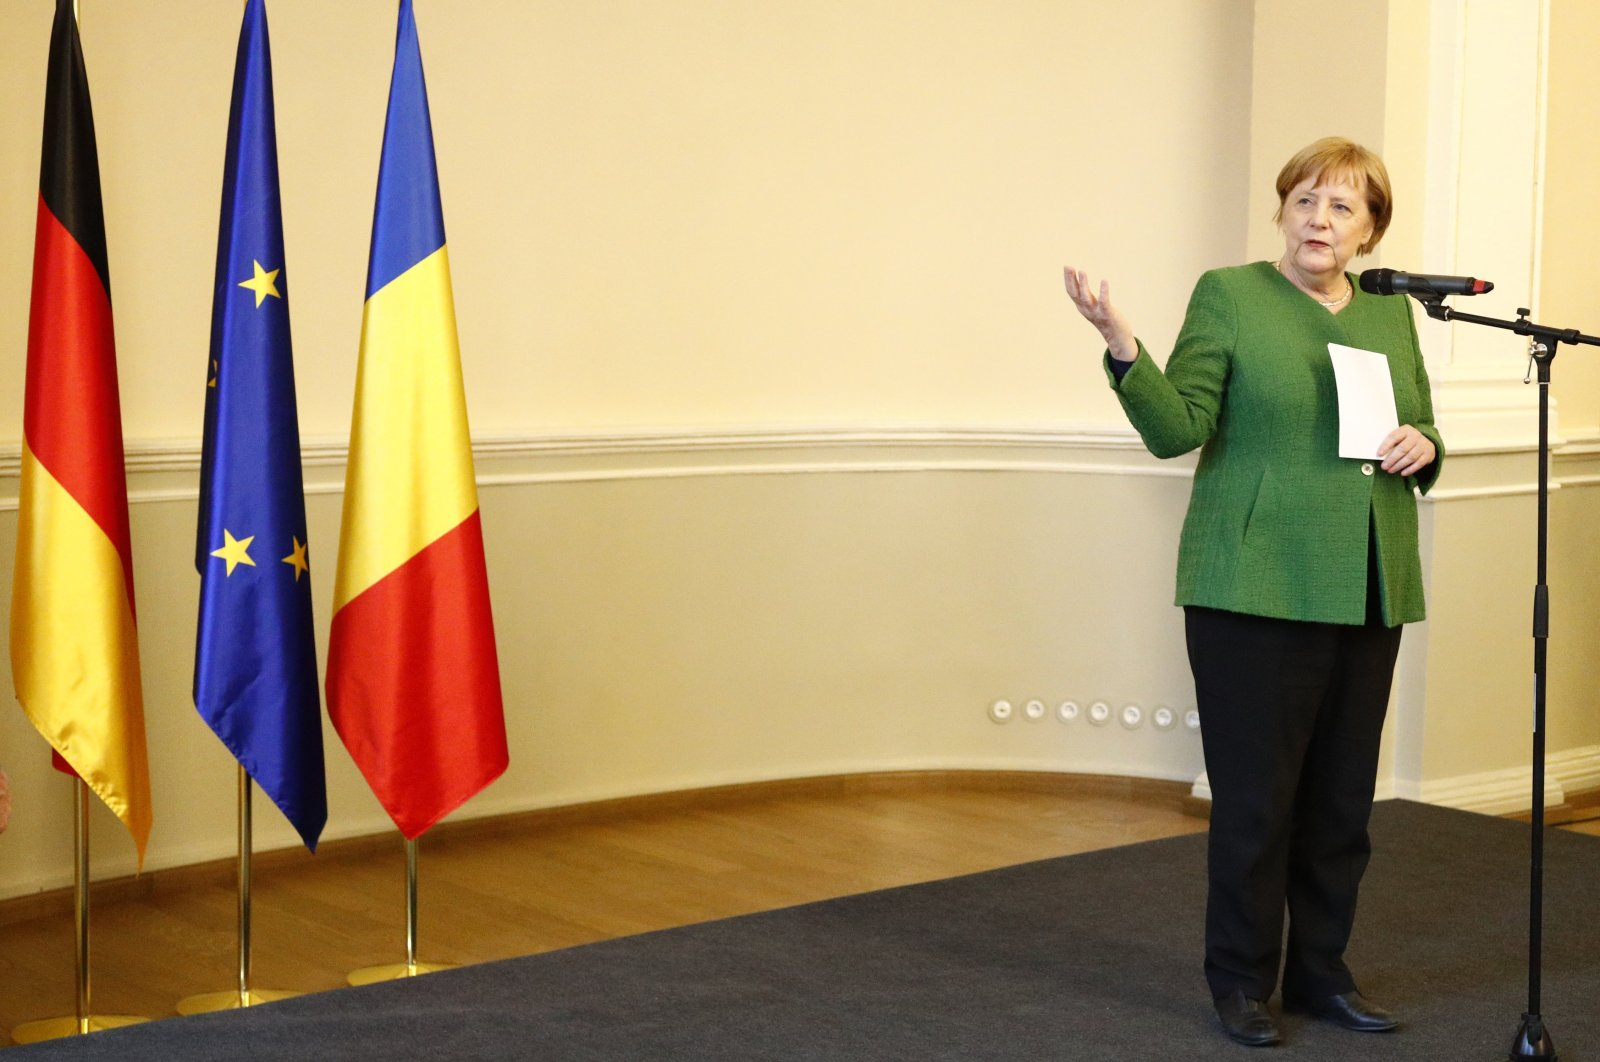 German Chancellor Angela Merkel delivers a speech during a meeting with members of Romania's German minority after an informal European Union summit, Sibiu, Romania, on May 9, 2019. (AP Photo)